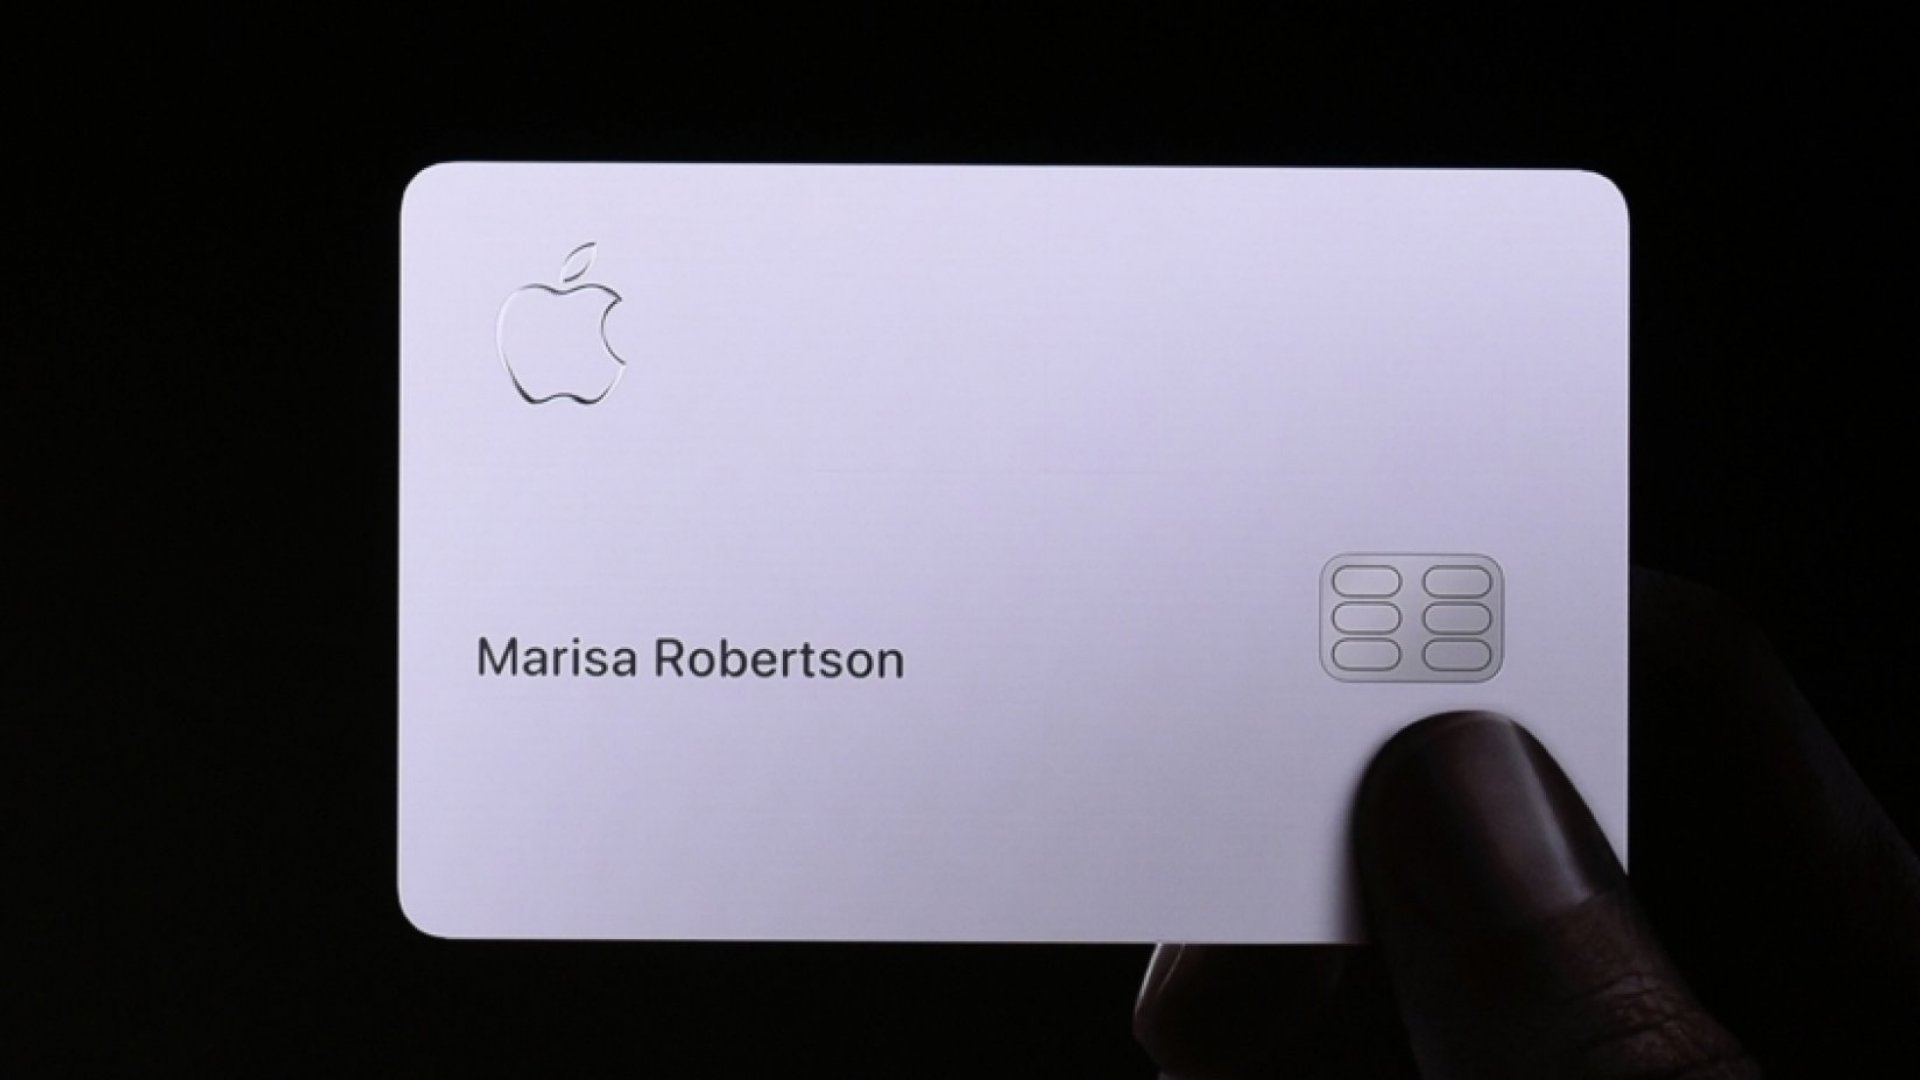 Apple Card Is Here: 7 Things You Should Know